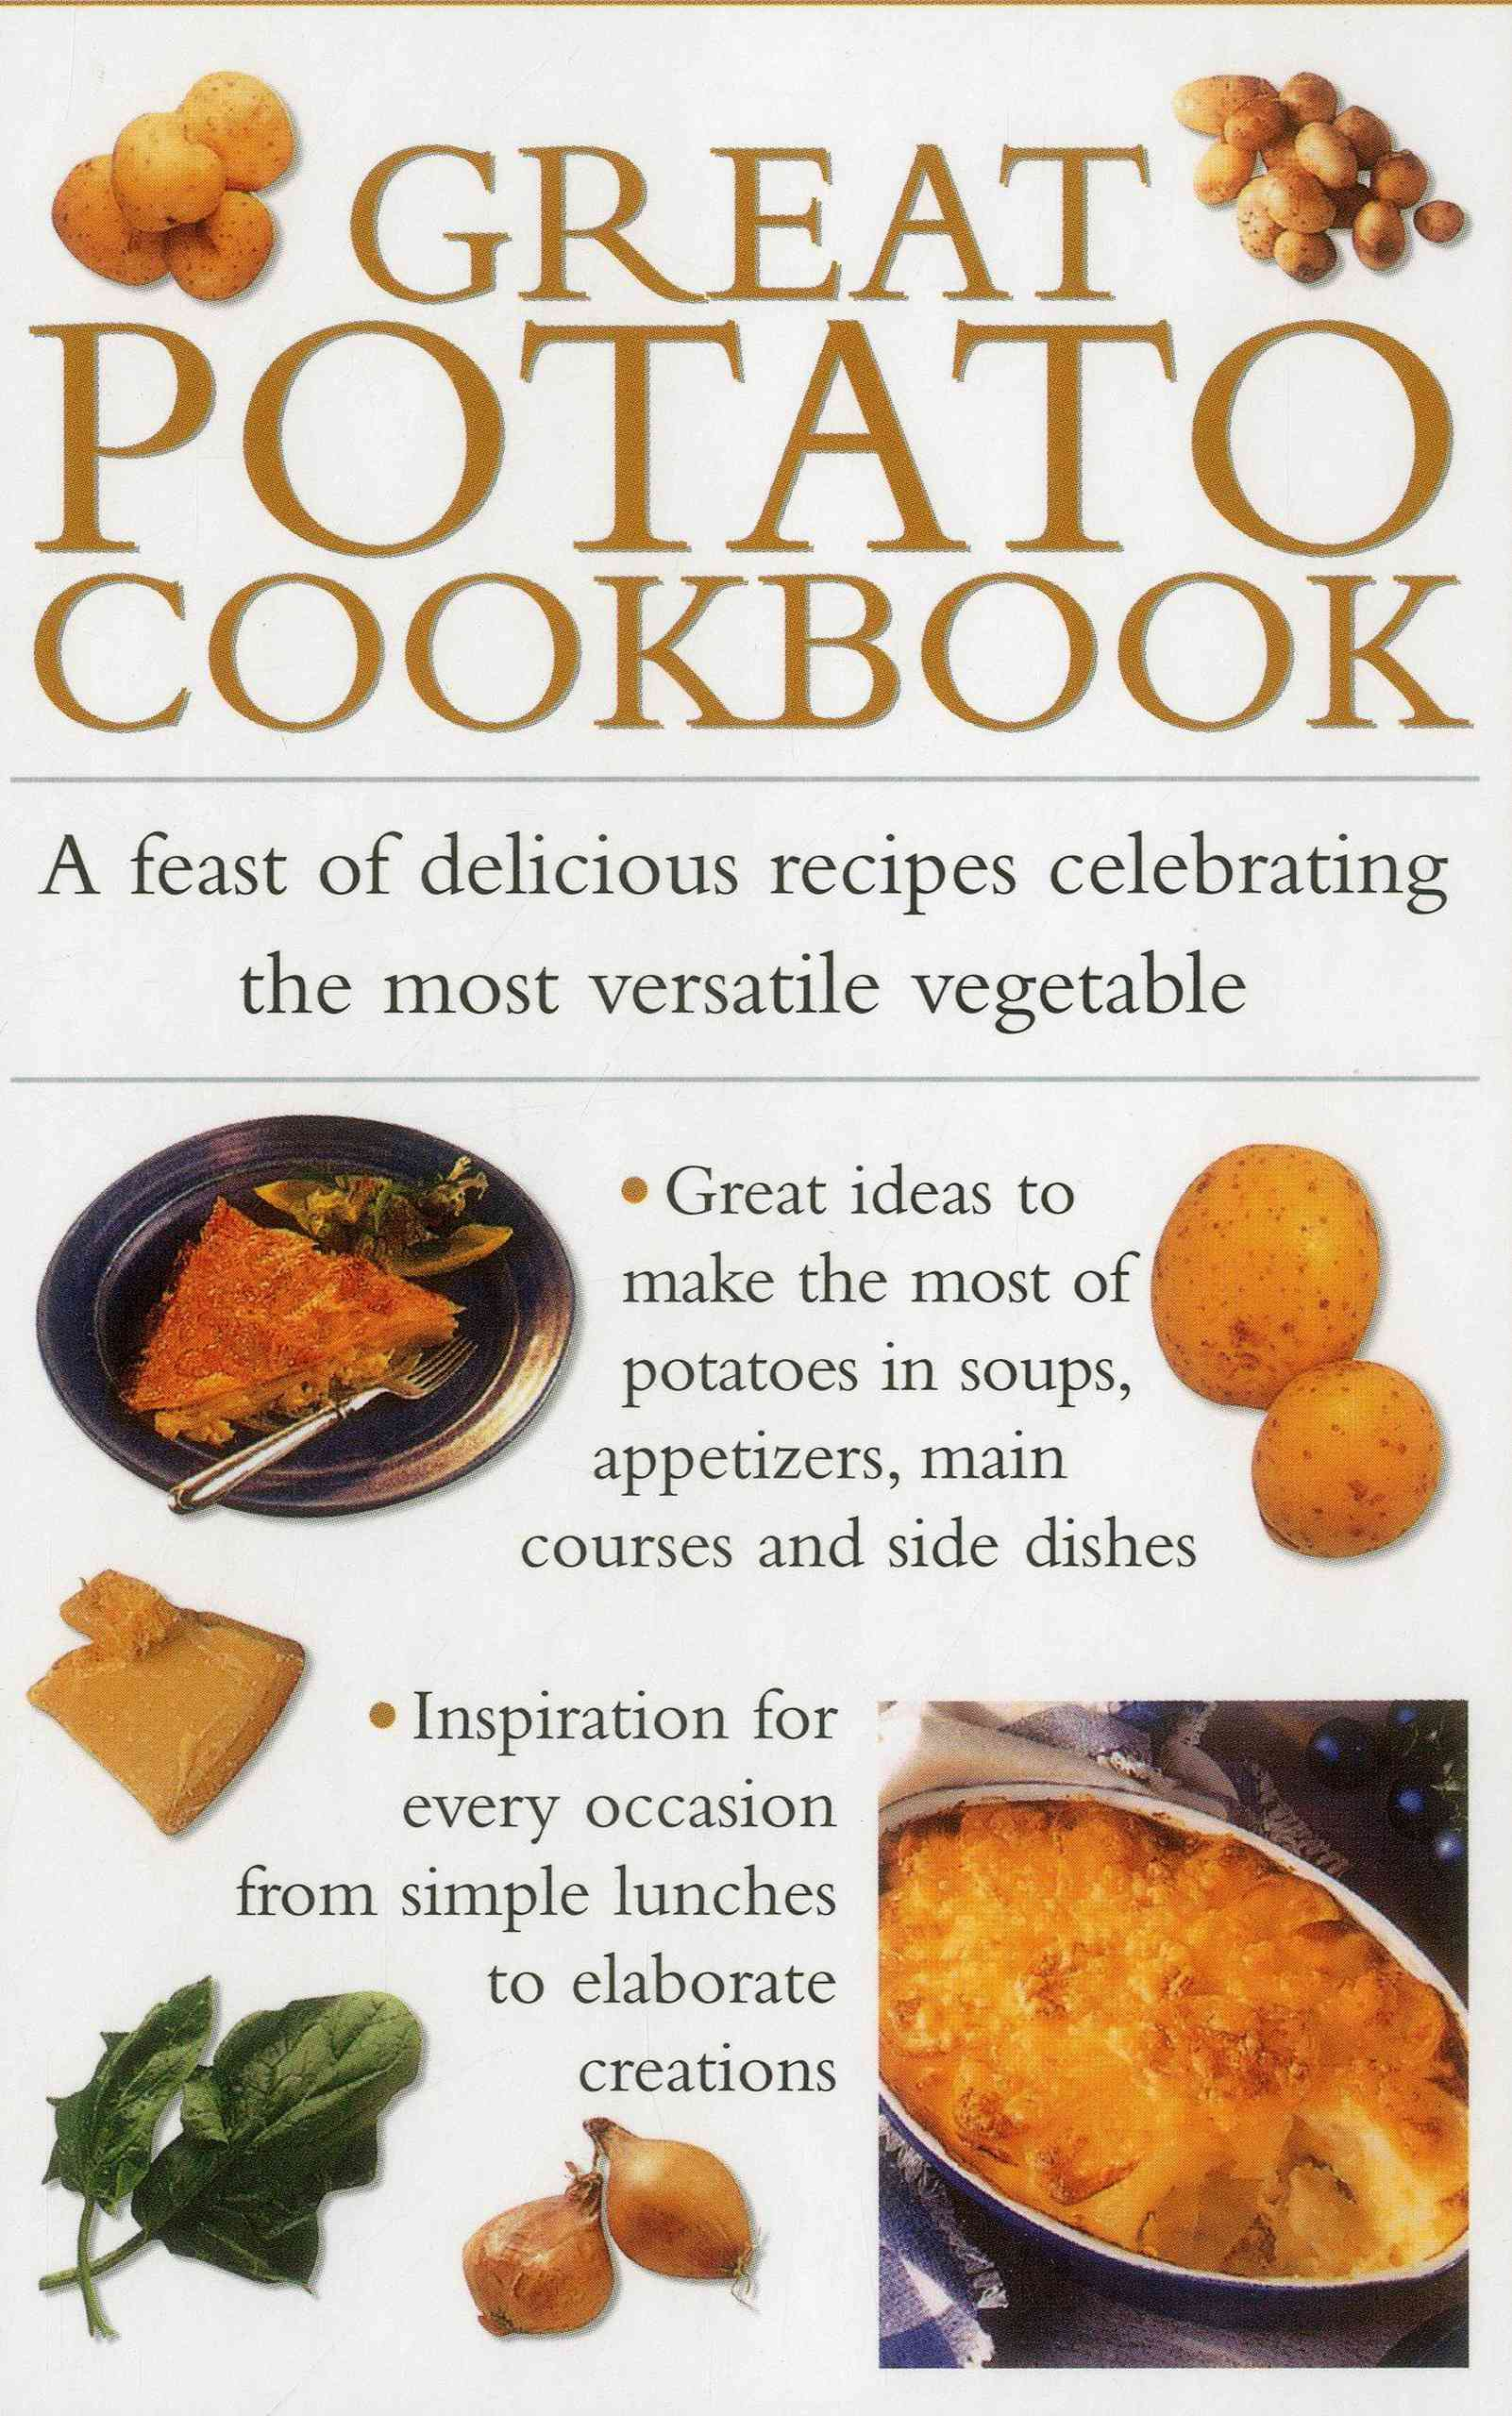 Great Potato Cookbook By Ferguson, Valerie